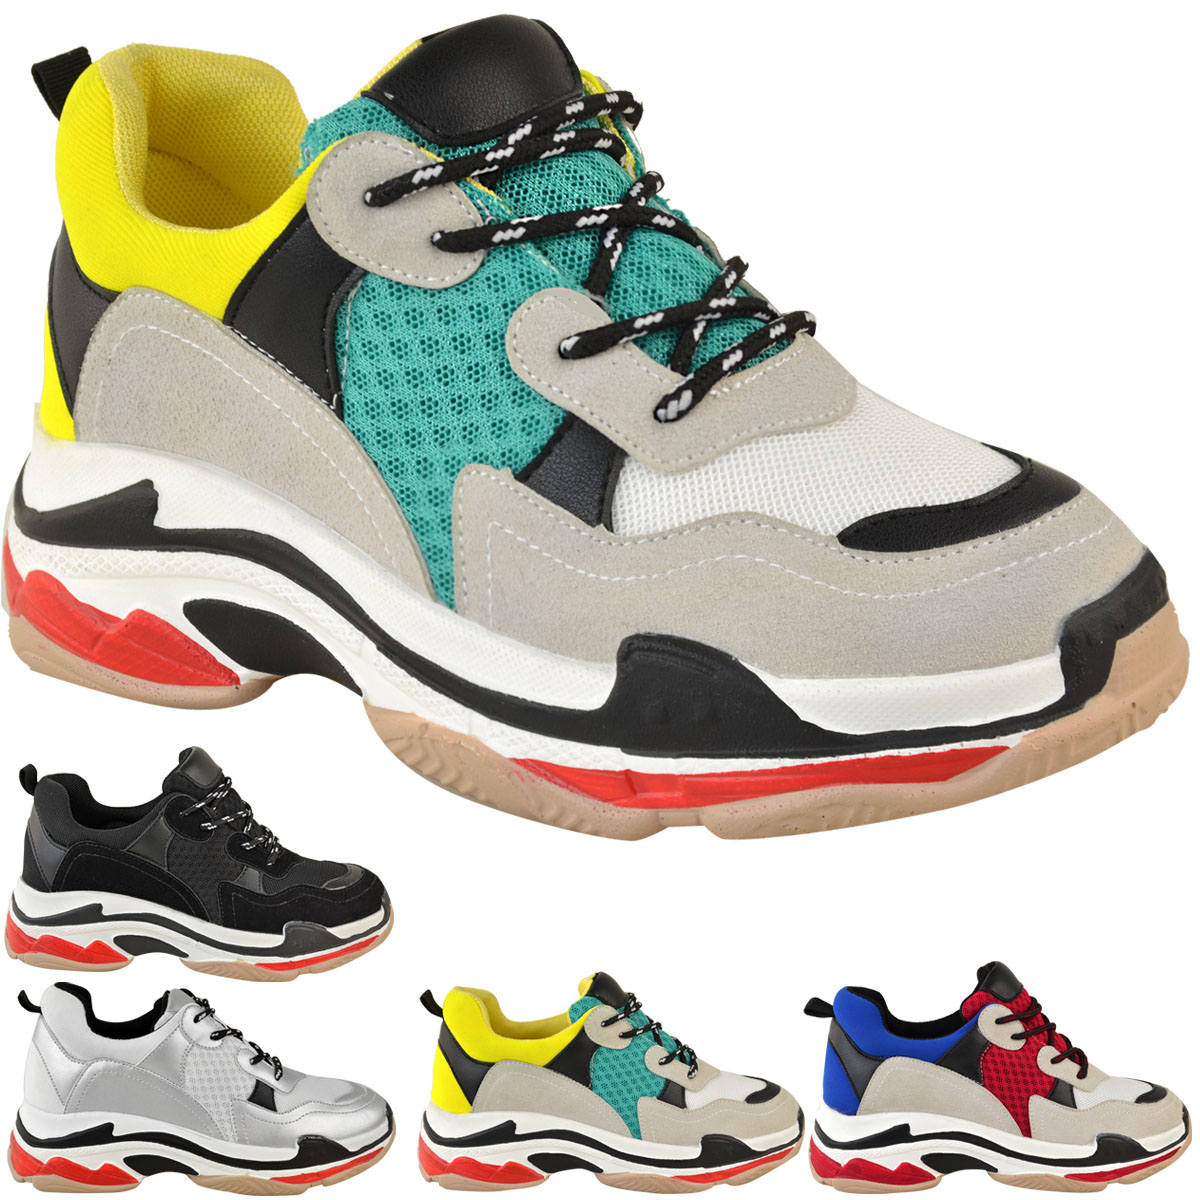 UK Shoes Store  New Womens Mesh Chunky Platform Sneakers Fitness Trainers Sports Footwear Shoes